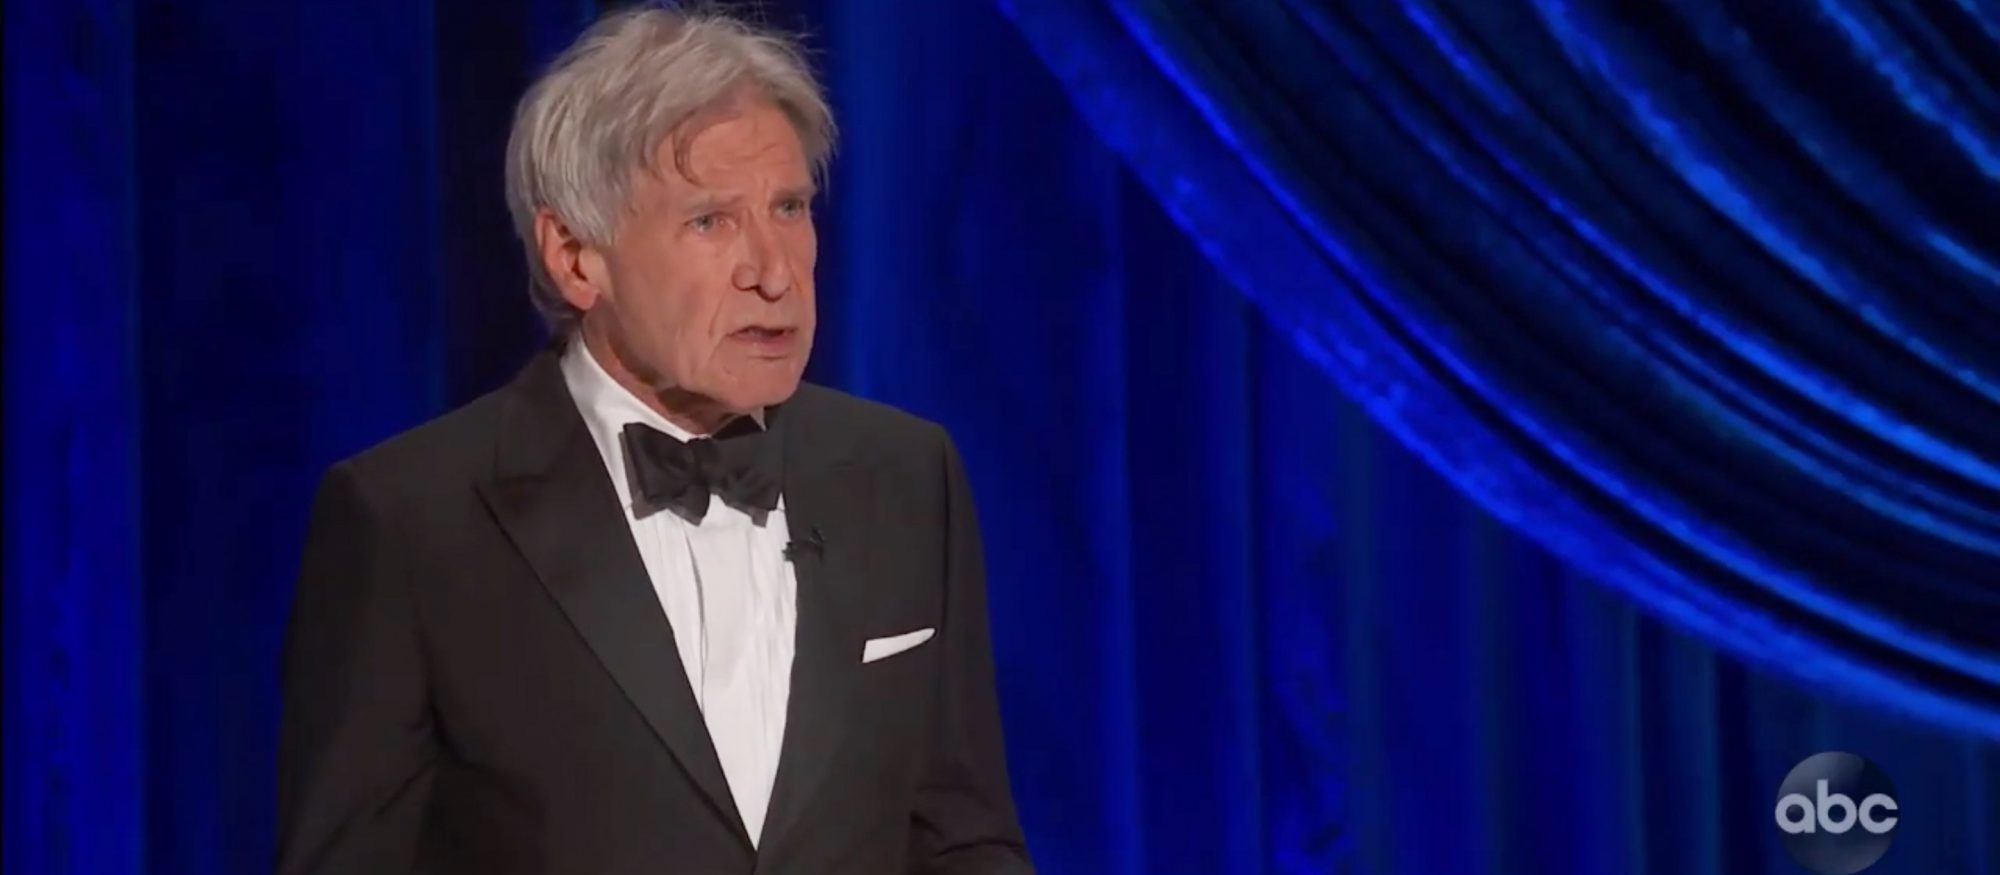 Harrison Ford Academy Awards